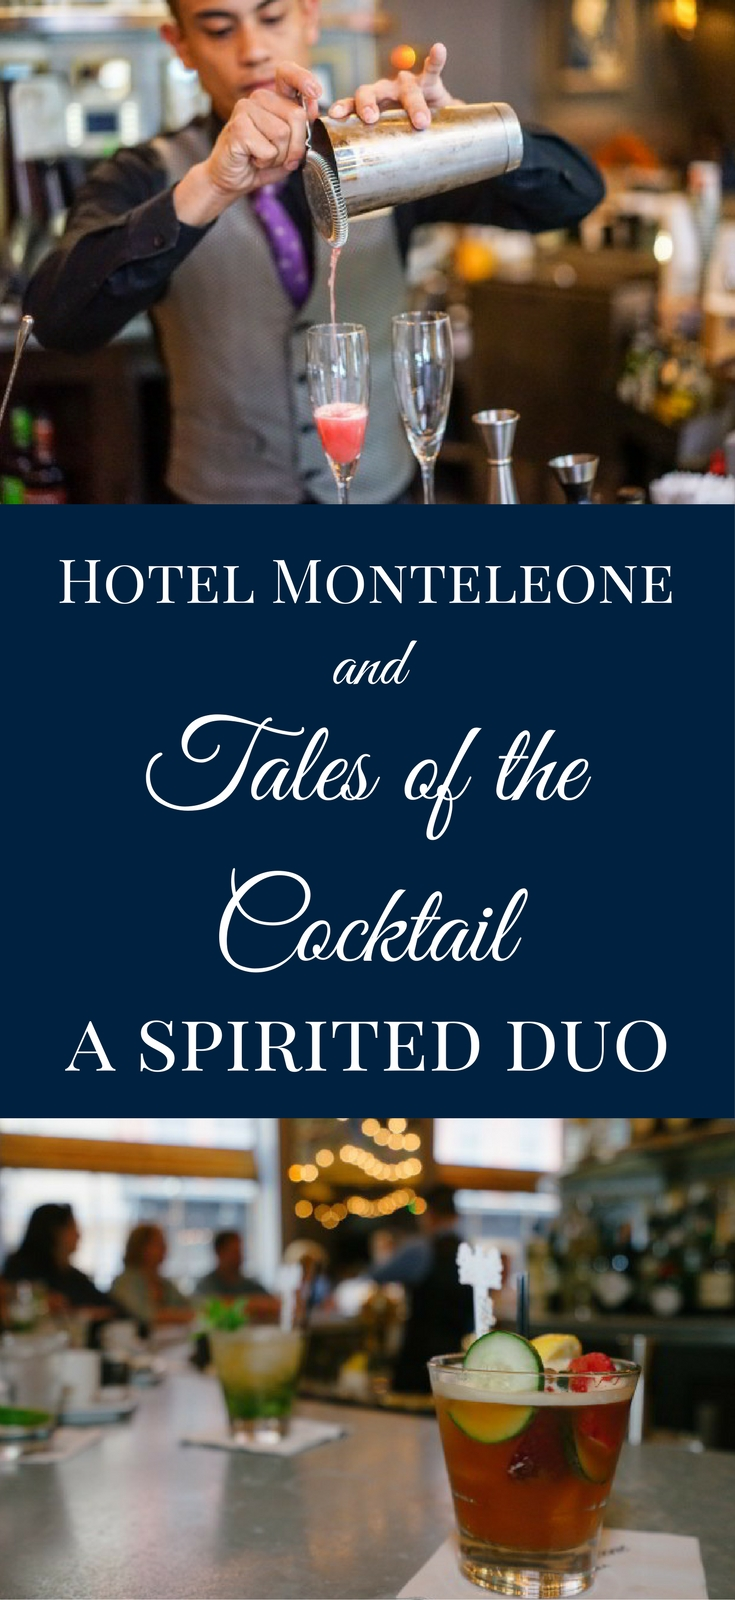 Hotel Monteleone is very excited to host Tales of the Cocktail, an annual New Orleans event which serves as the premier cocktail festival in the world.